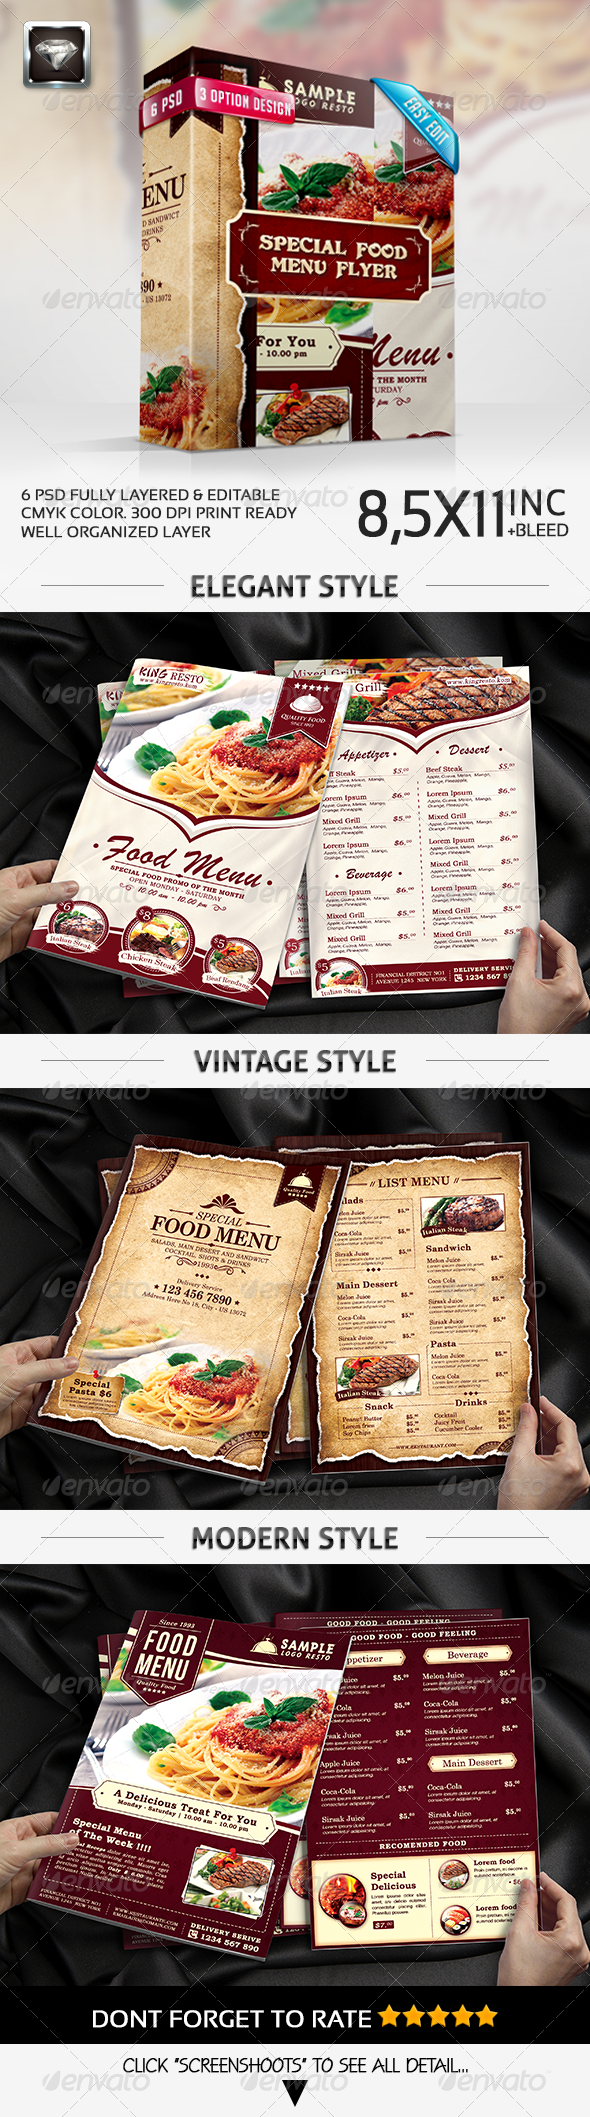 GraphicRiver Special Food Menu Flyer 7597926